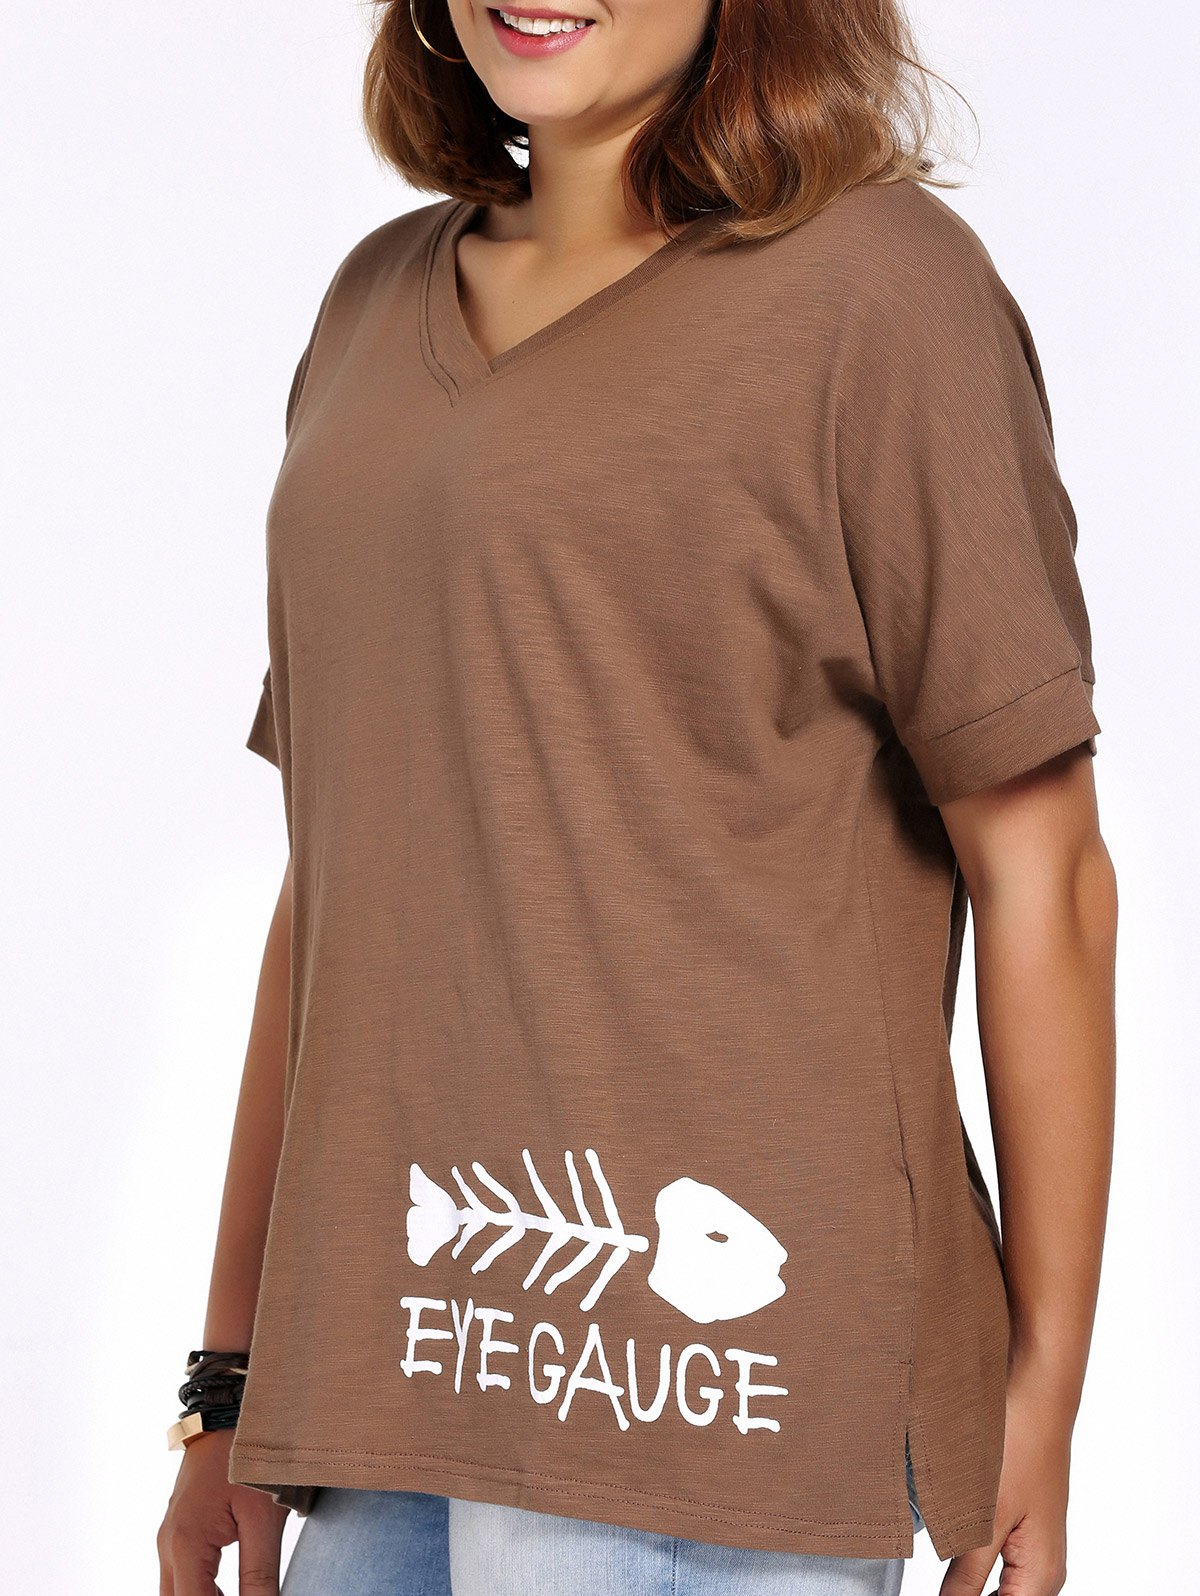 Casual Plus Size Cut Out V Neck Fishbone Print Women's T-Shirt - COFFEE XL